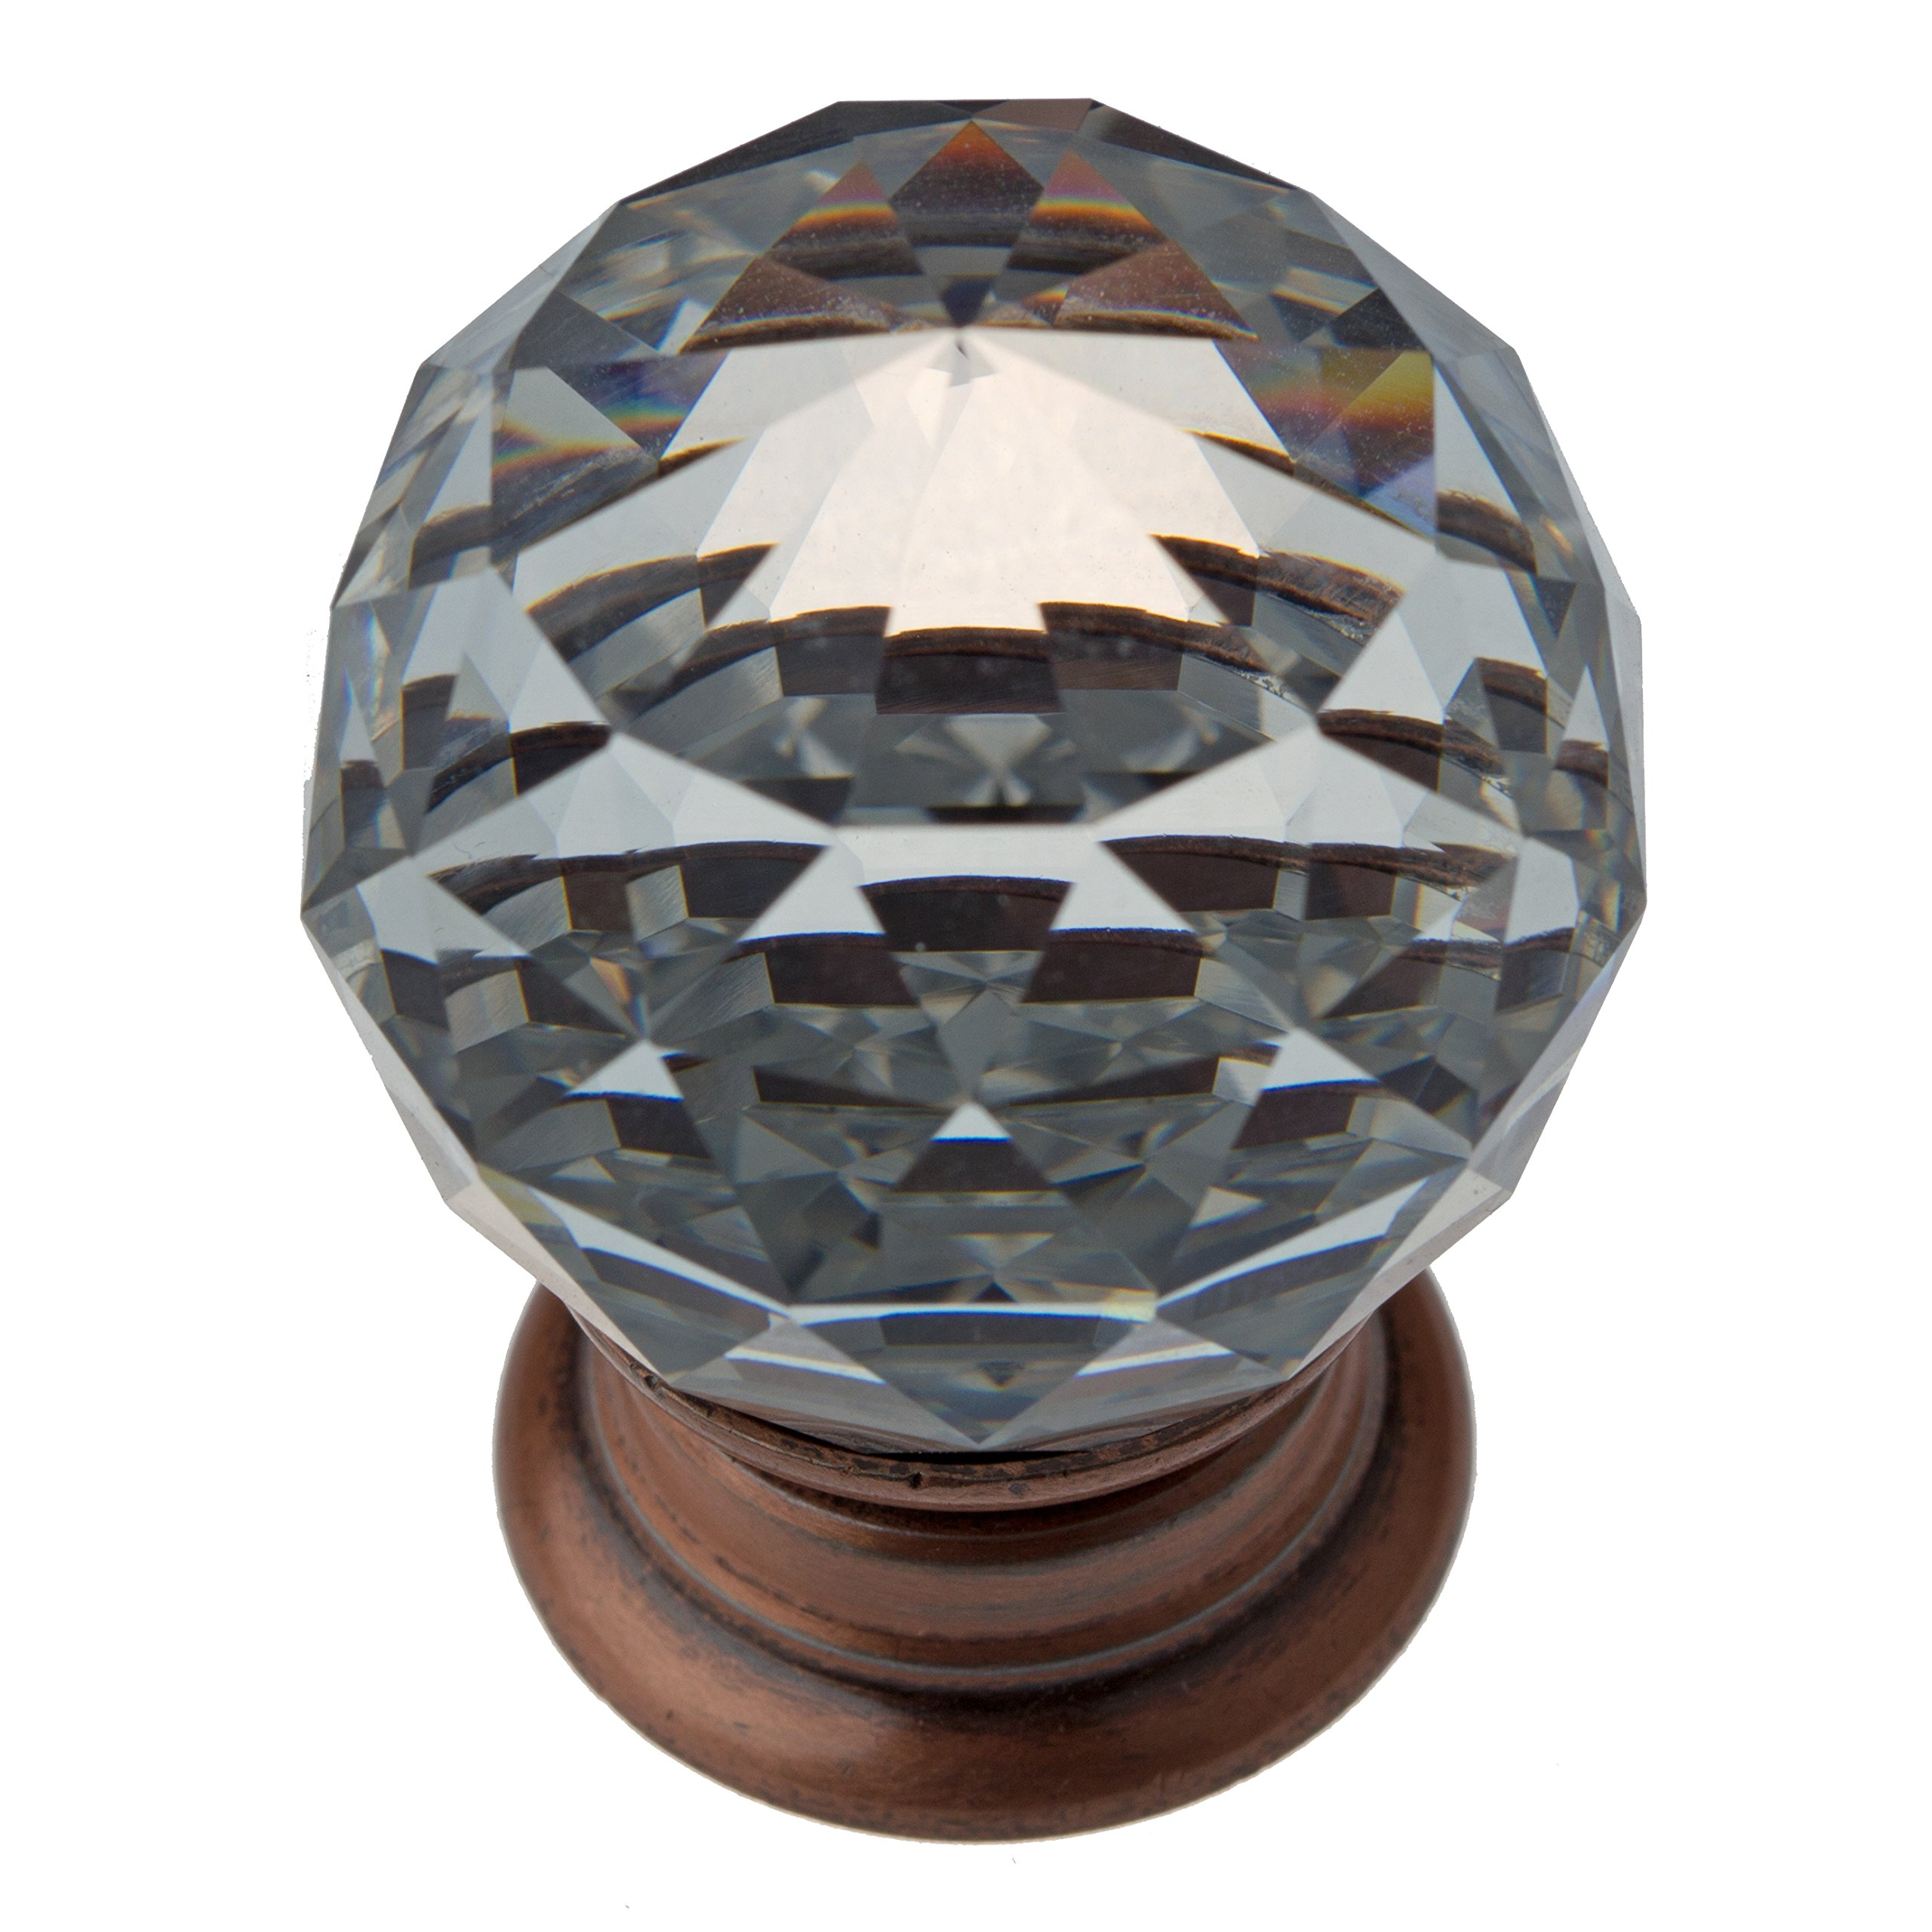 GlideRite Hardware 9003-ORB-30-10 Clear Small K9 Crystal with Oil Rubbed Bronze Base Cabinet Knobs 10 Pack